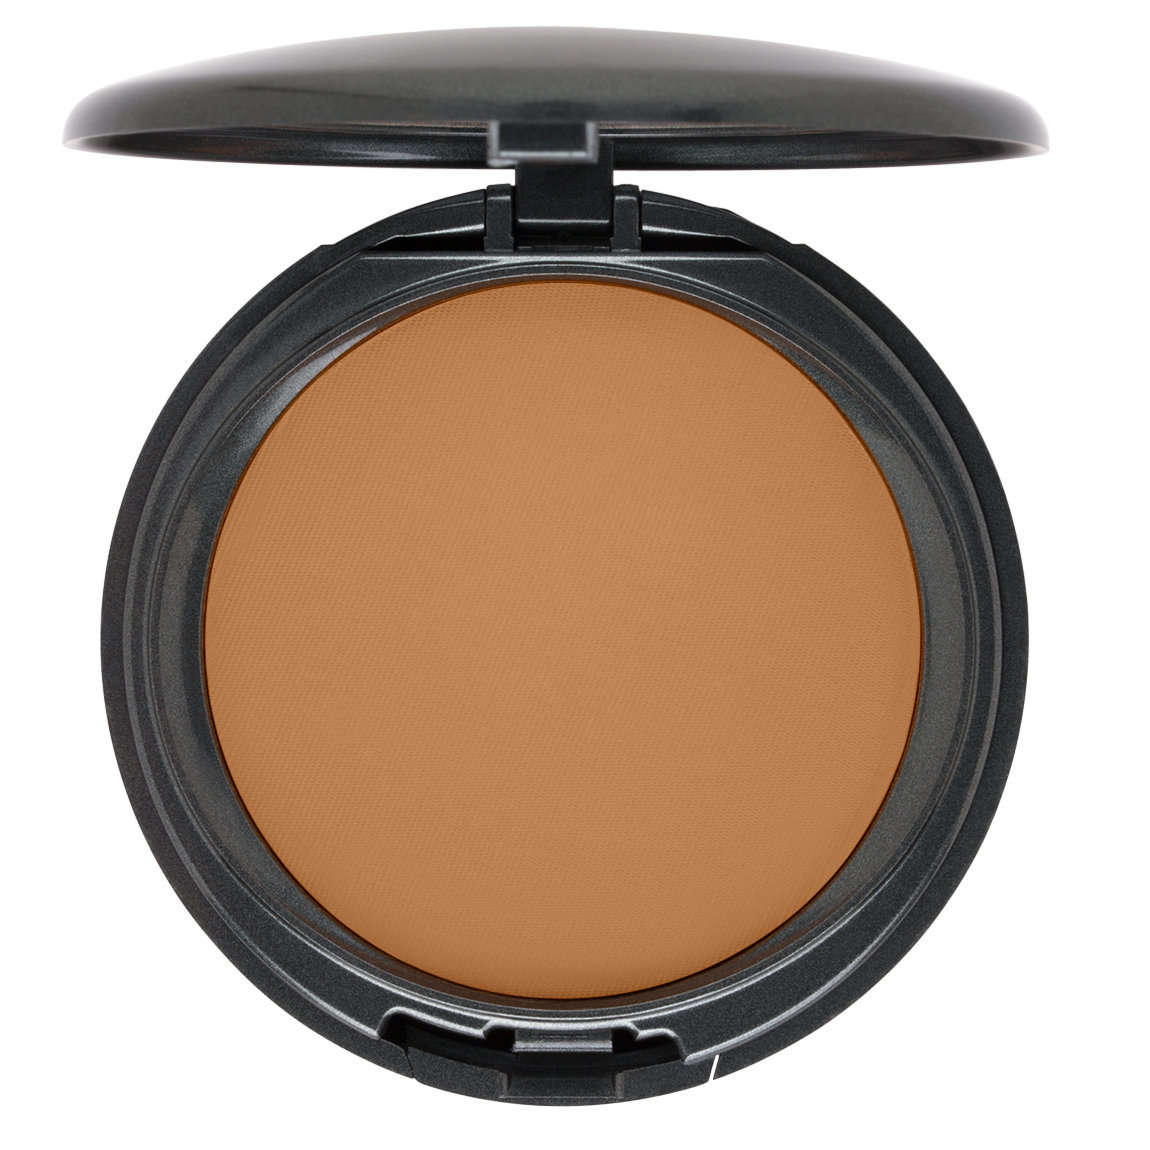 COVER | FX Pressed Mineral Foundation G60 product swatch.